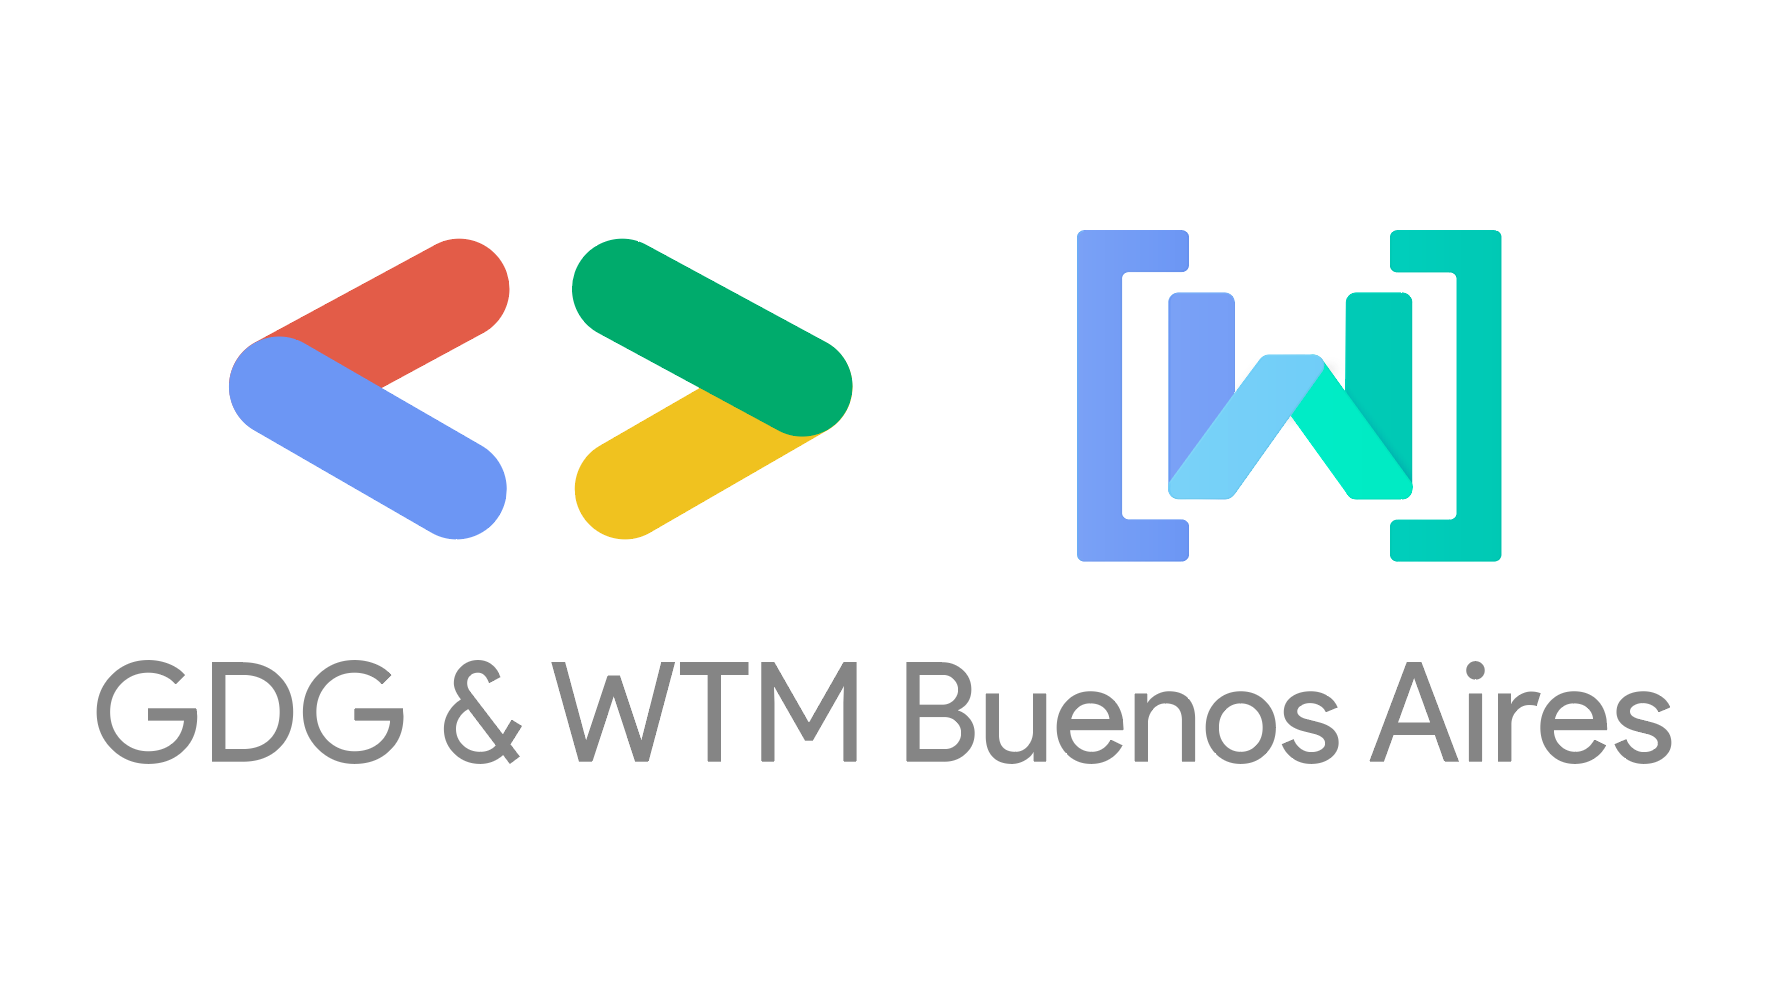 GDG & WTM Buenos Aires